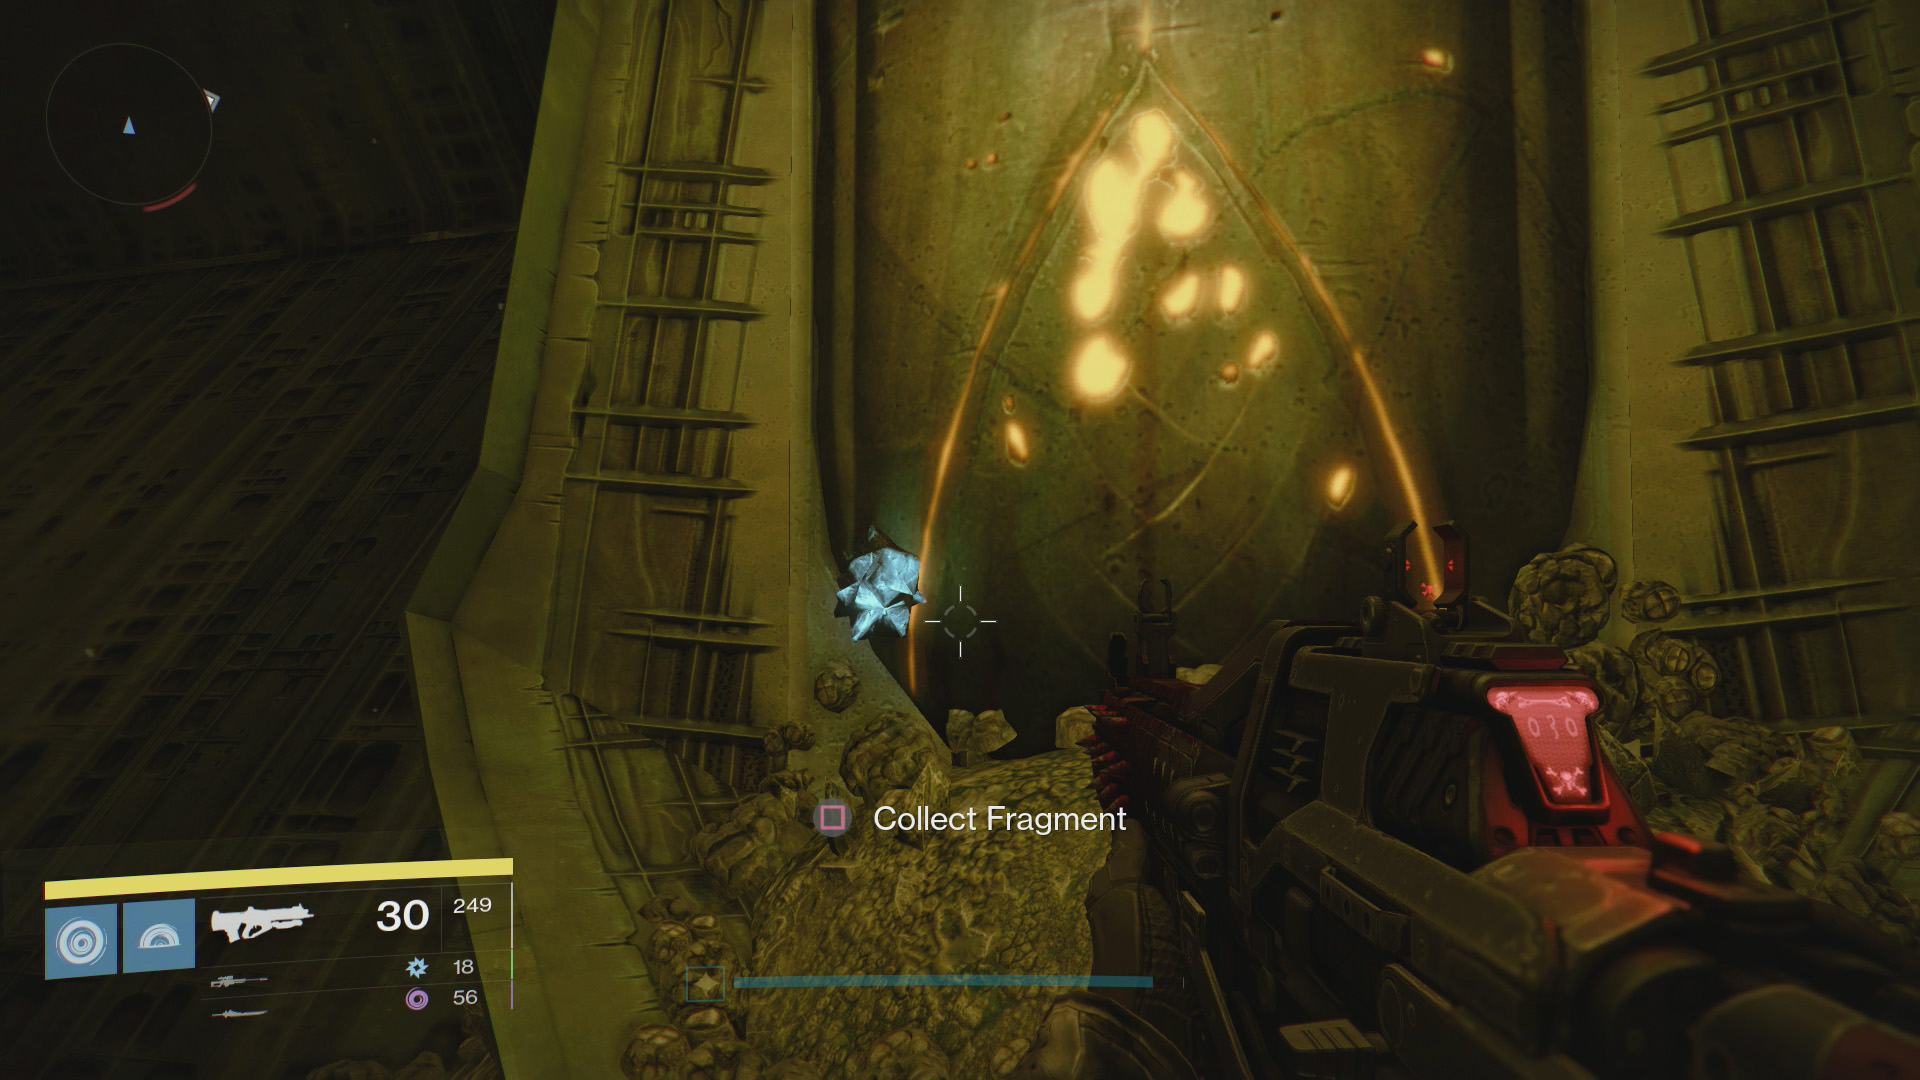 The Founts - Calcified Fragment 22: This Fragment is just around the corner from Fragment 21, so follow the same initial steps to get to this location.